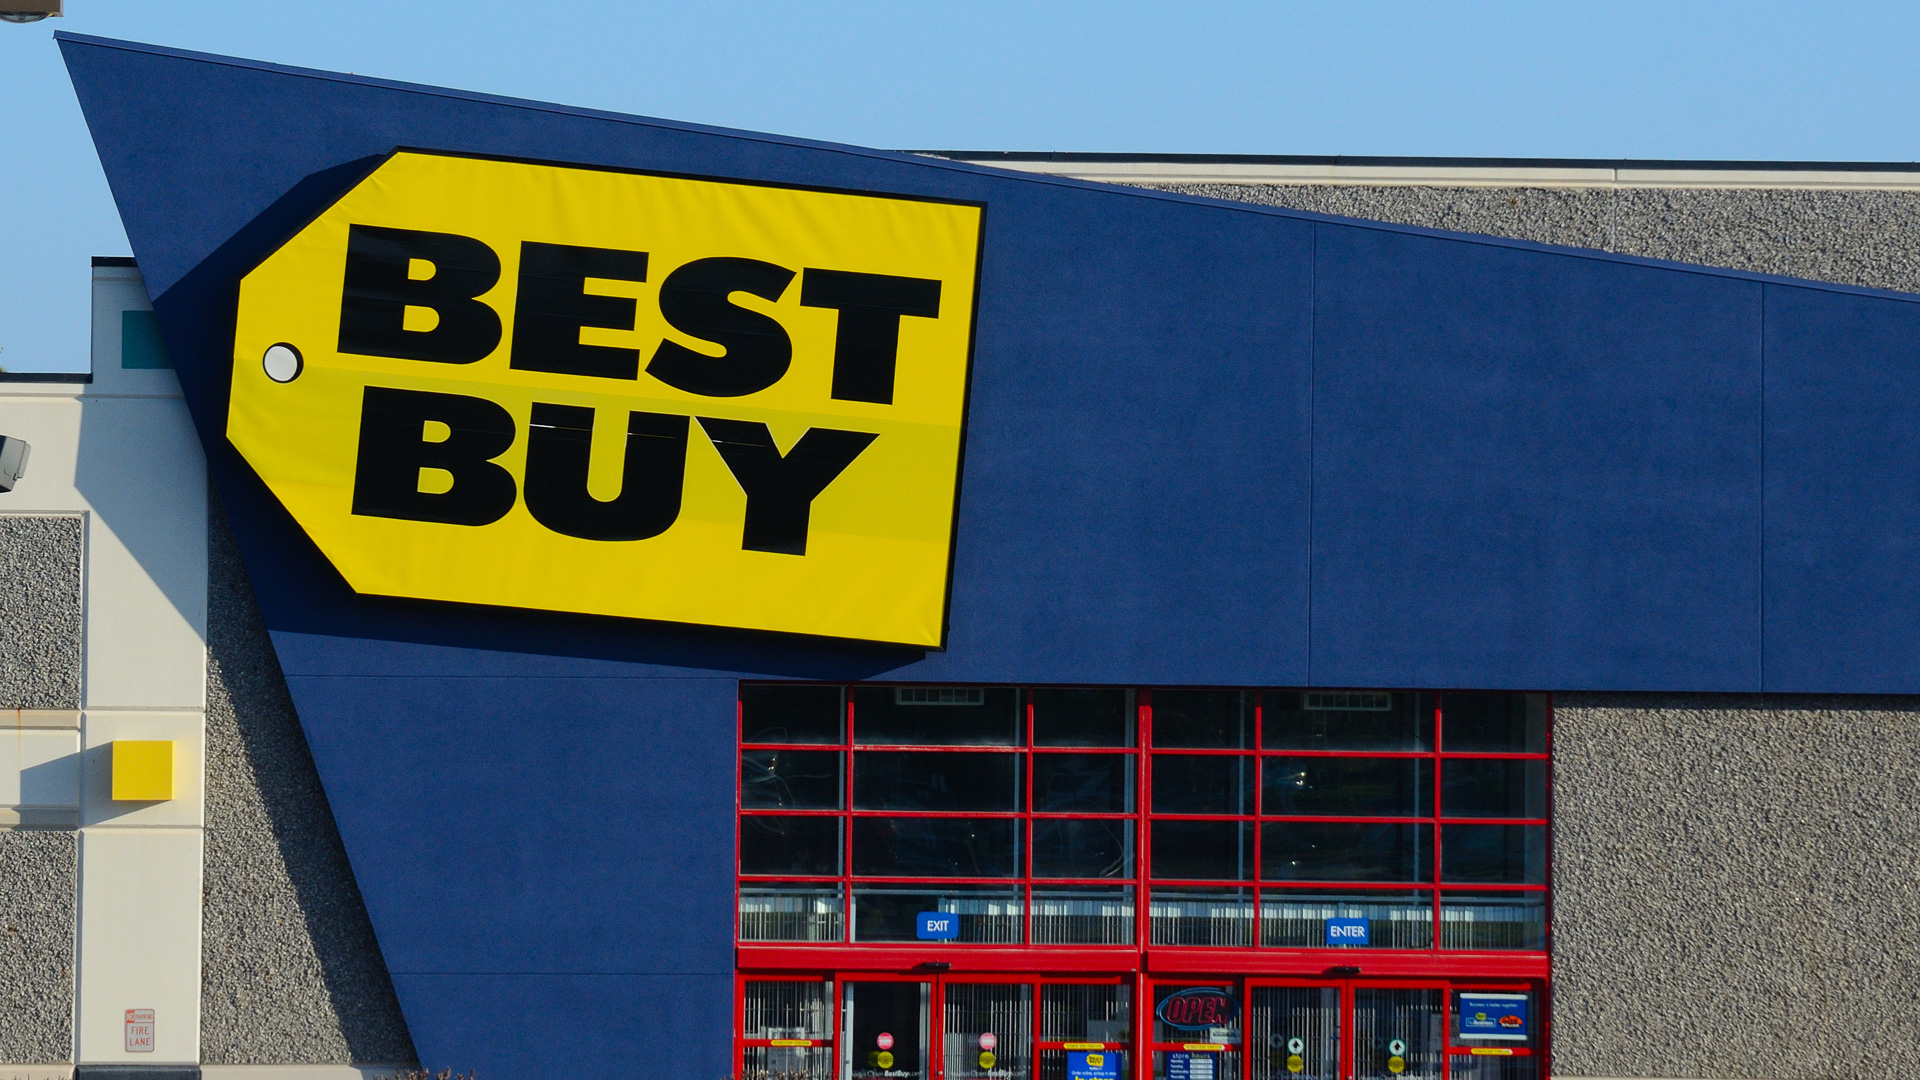 Best Buy's After-Christmas Sale: 2-in-1 Laptops, 4K Ultra-High Definition Smart TVs and More